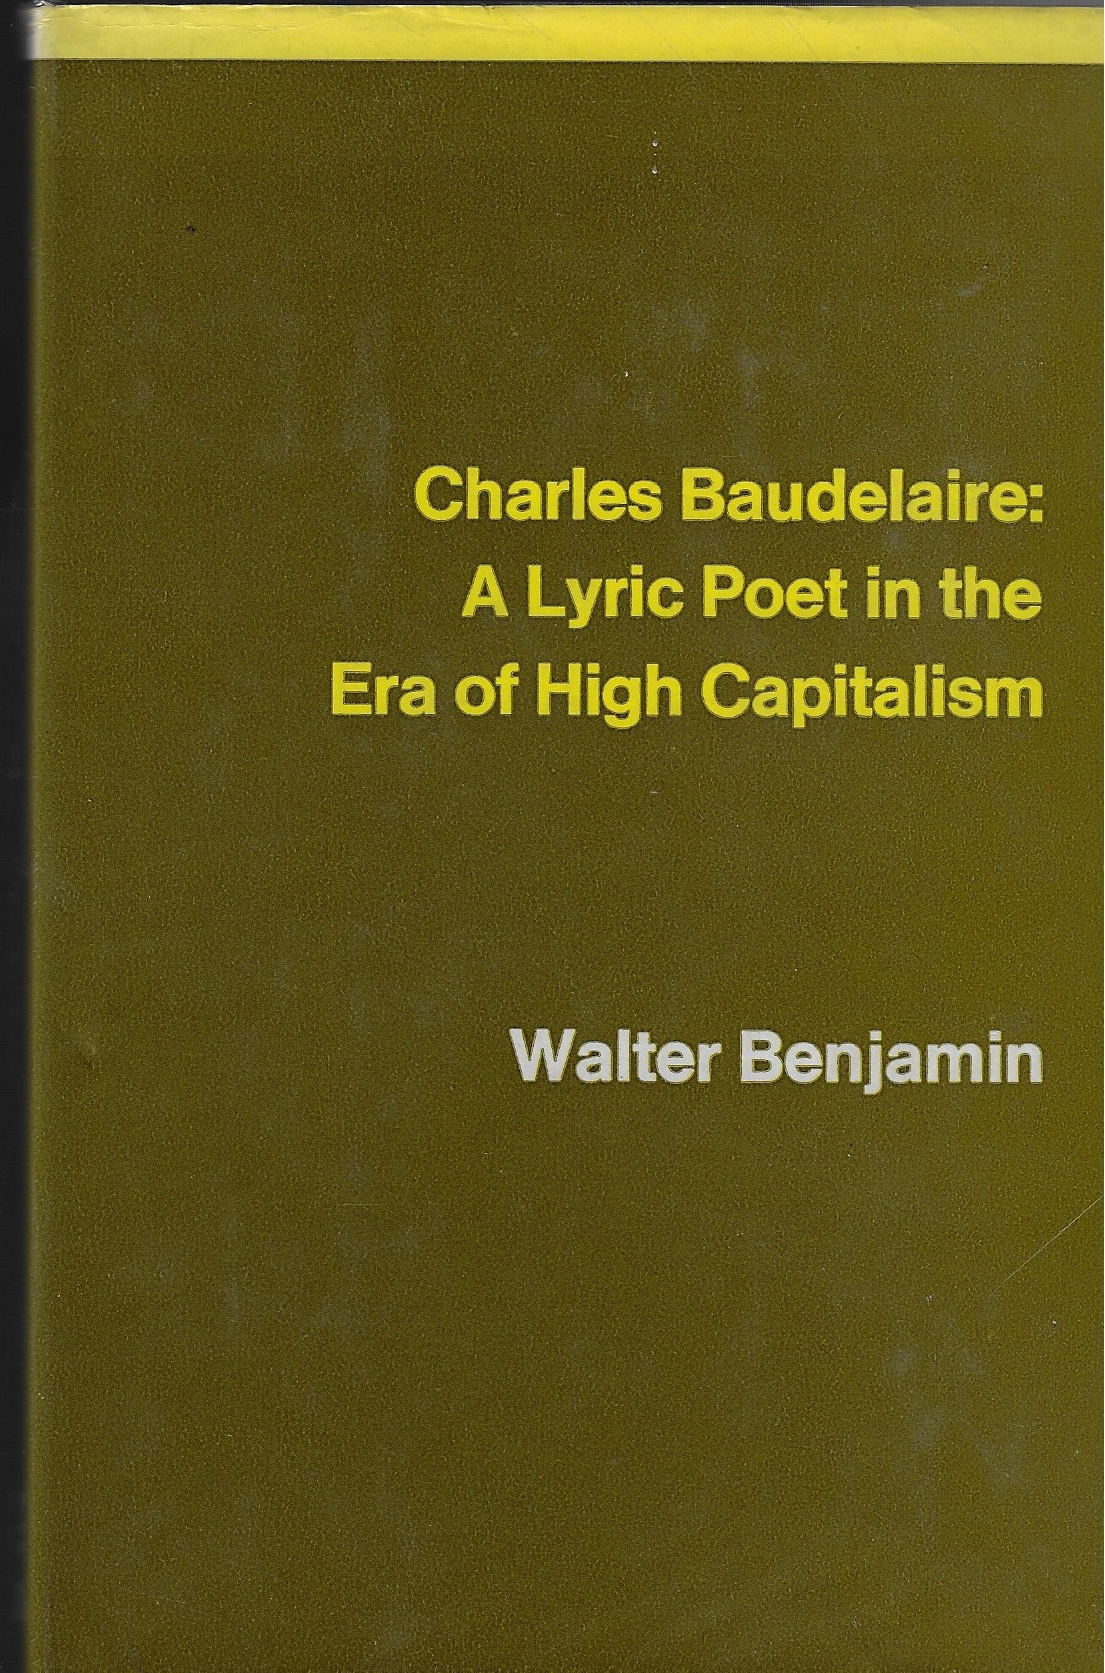 Image for Charles Baudelaire A Lyric Poet in the Era of High Capitalism